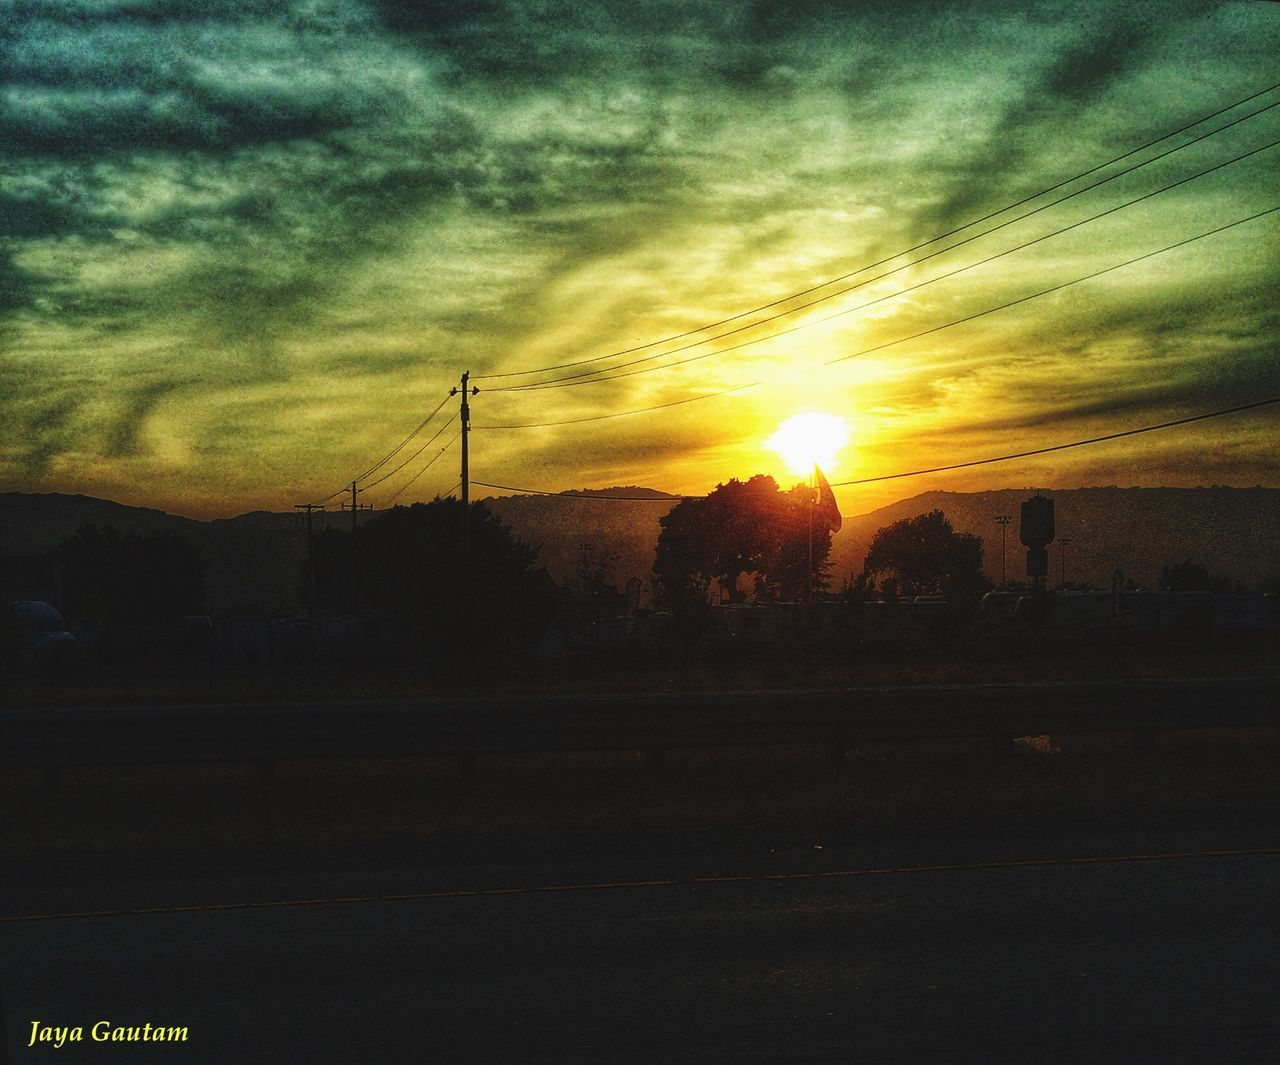 sunset, sky, silhouette, sun, cloud - sky, connection, cable, nature, beauty in nature, landscape, no people, electricity pylon, scenics, tree, outdoors, technology, day